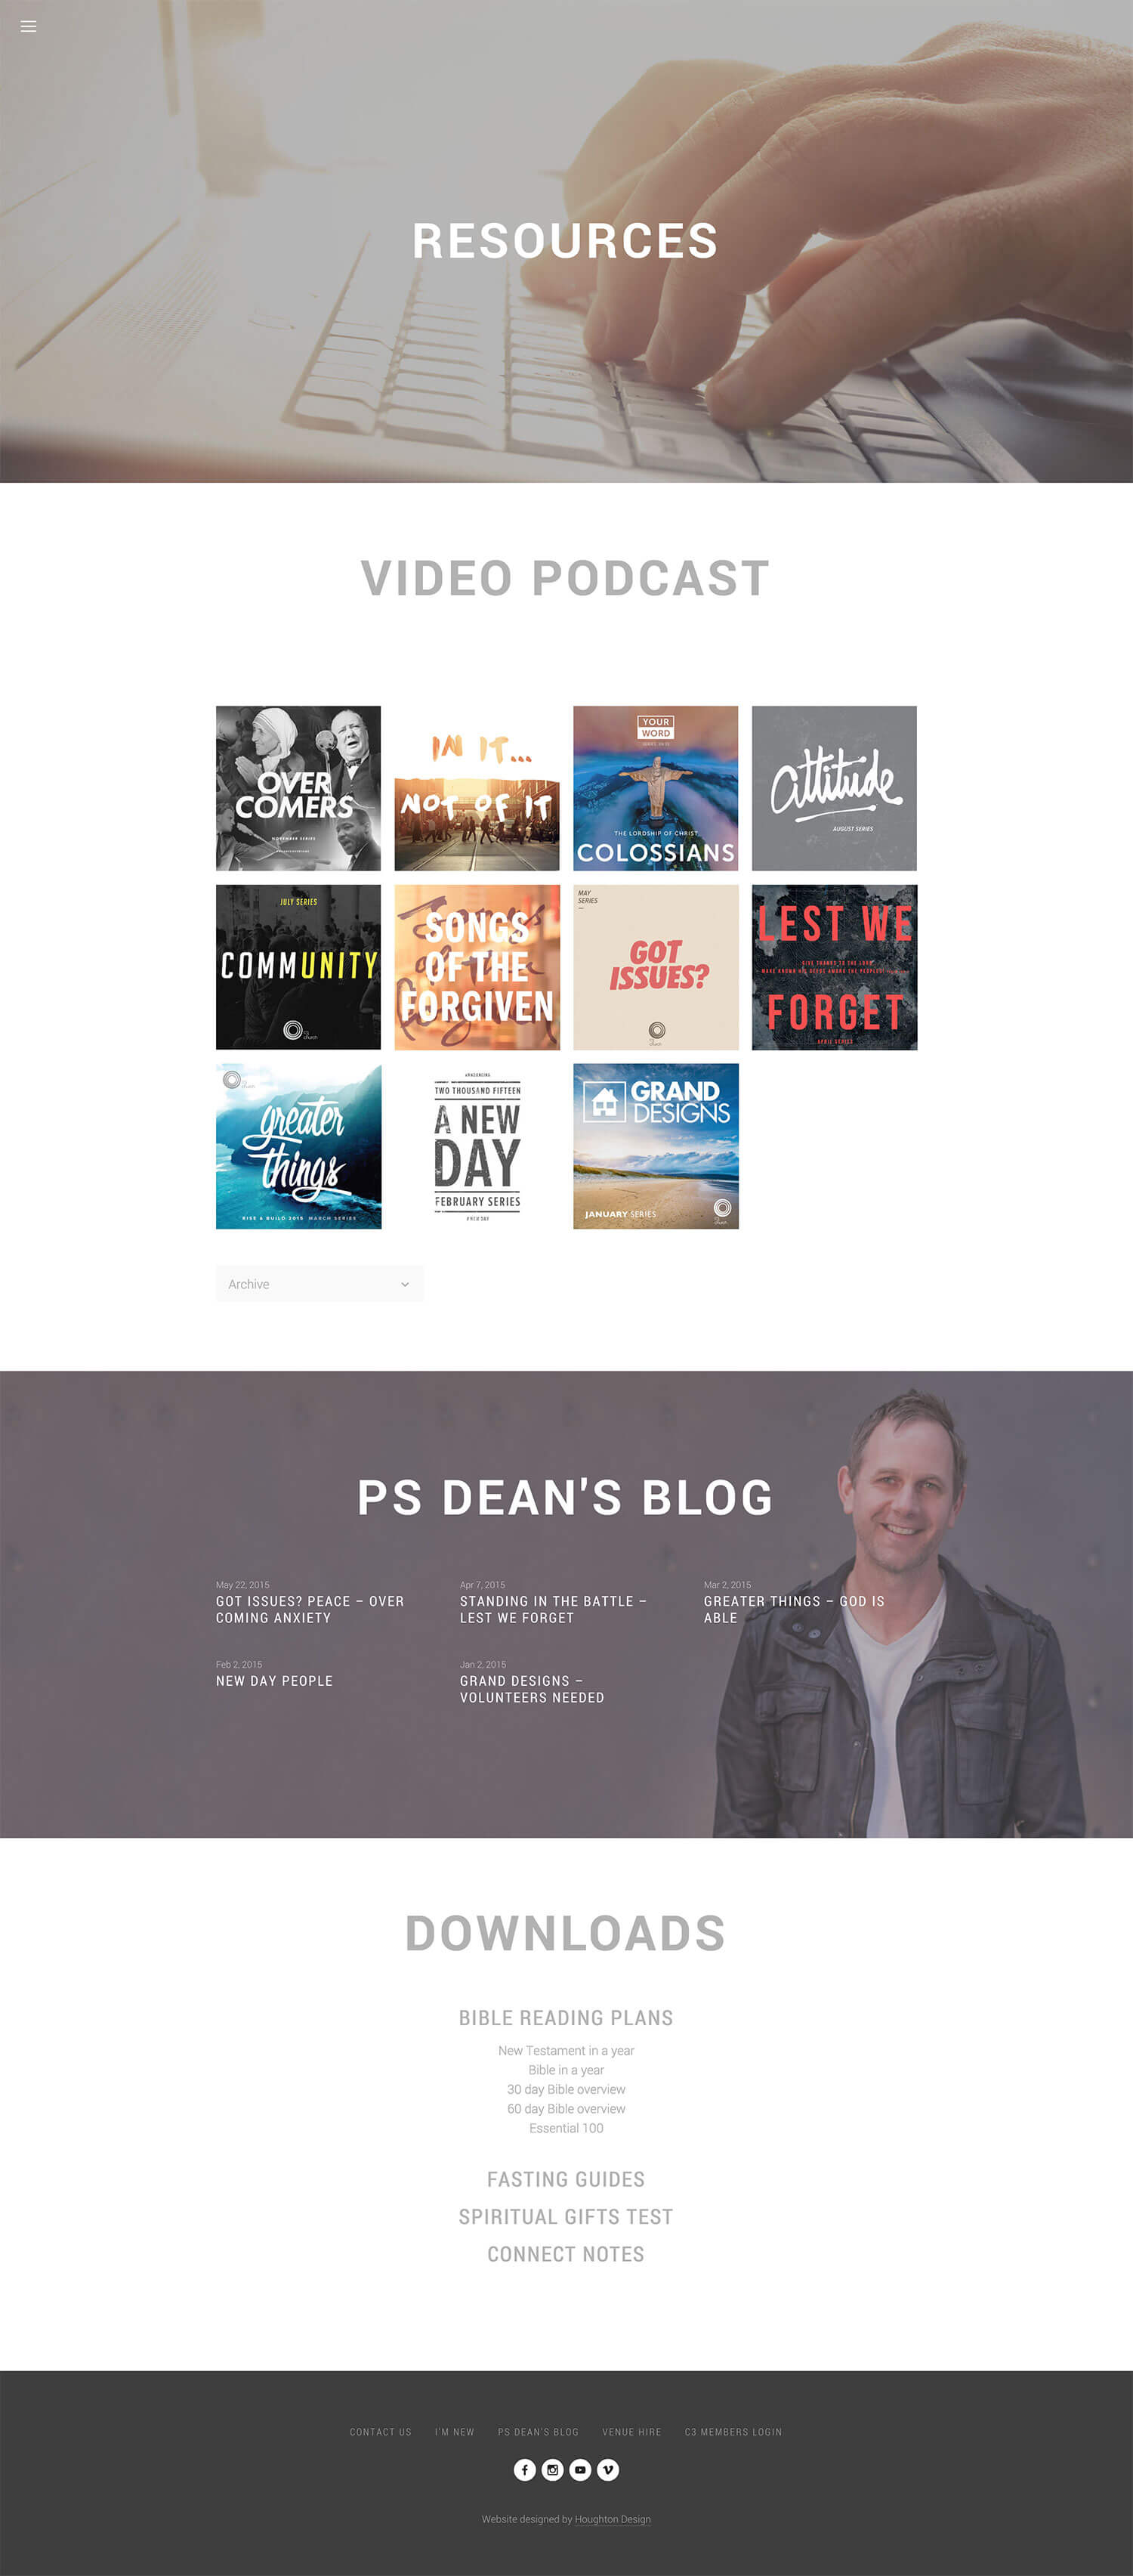 C3 Auckland - Resources page